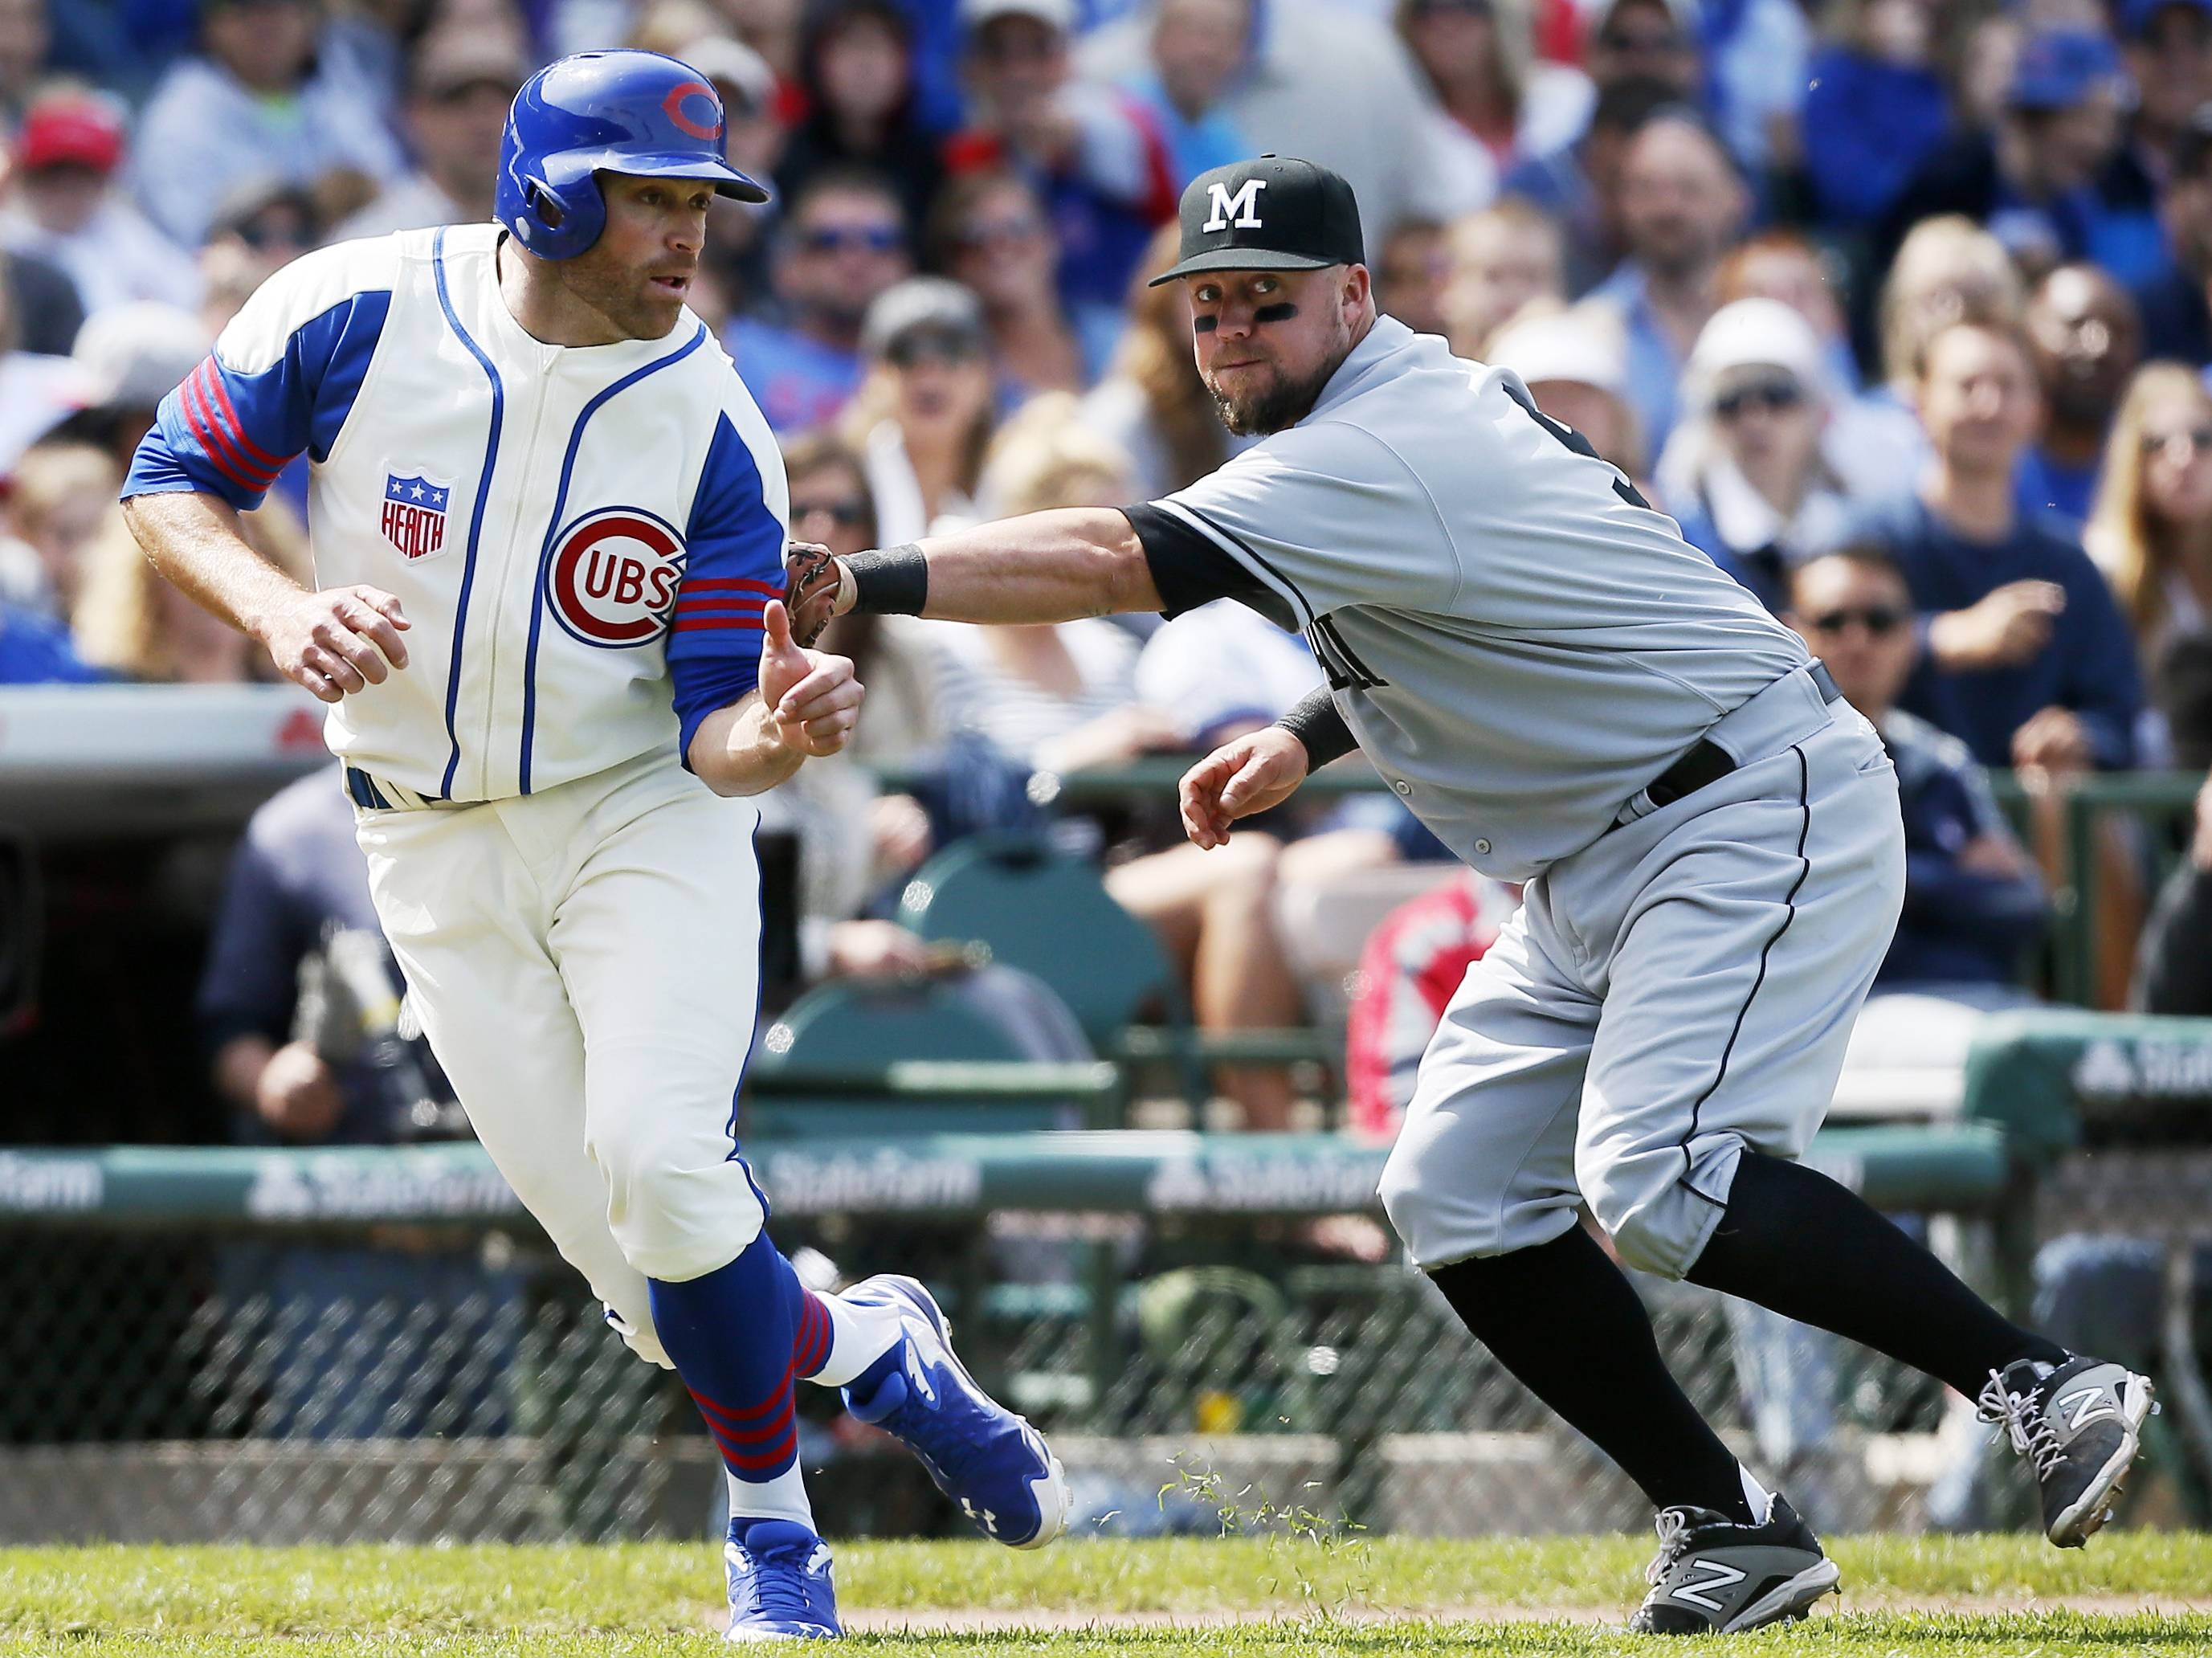 The Cubs' Nate Schierholtz, left, is tagged out by Miami Marlins third baseman Casey McGehee on a run down during the sixth inning of a baseball game on Sunday, June 8, 2014, at Wrigley Field.